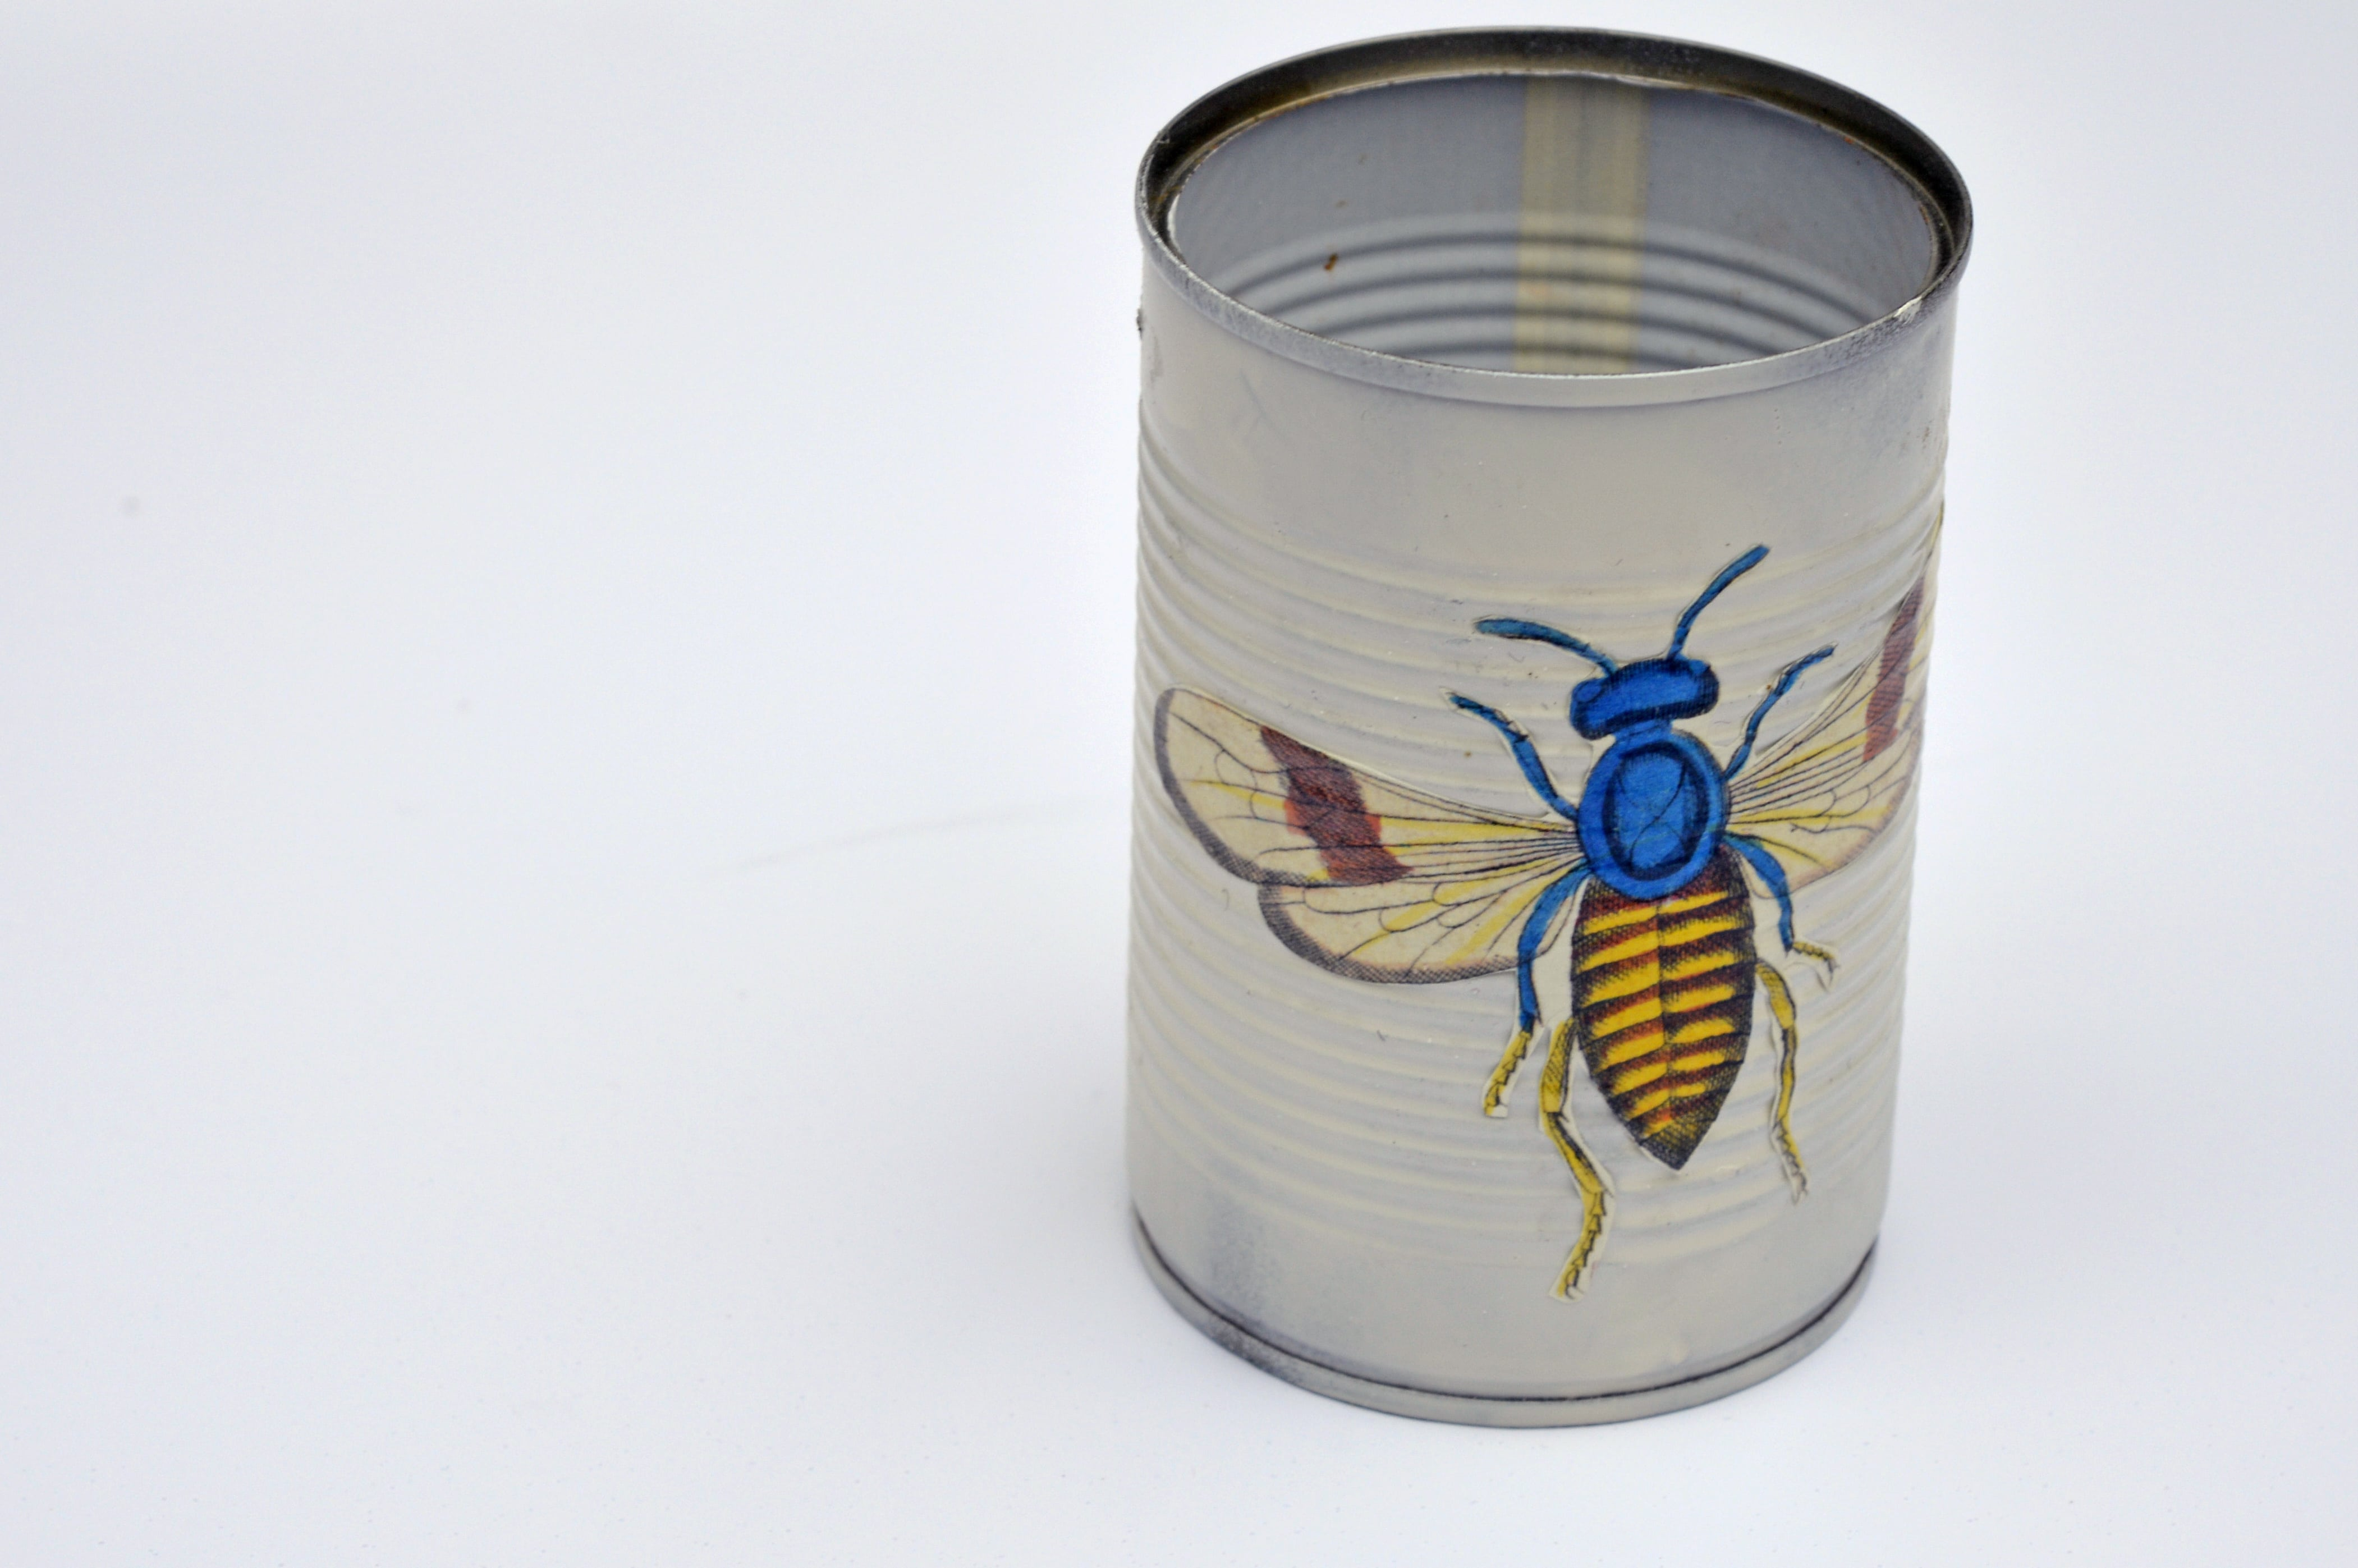 Sticking insect to front of tin can